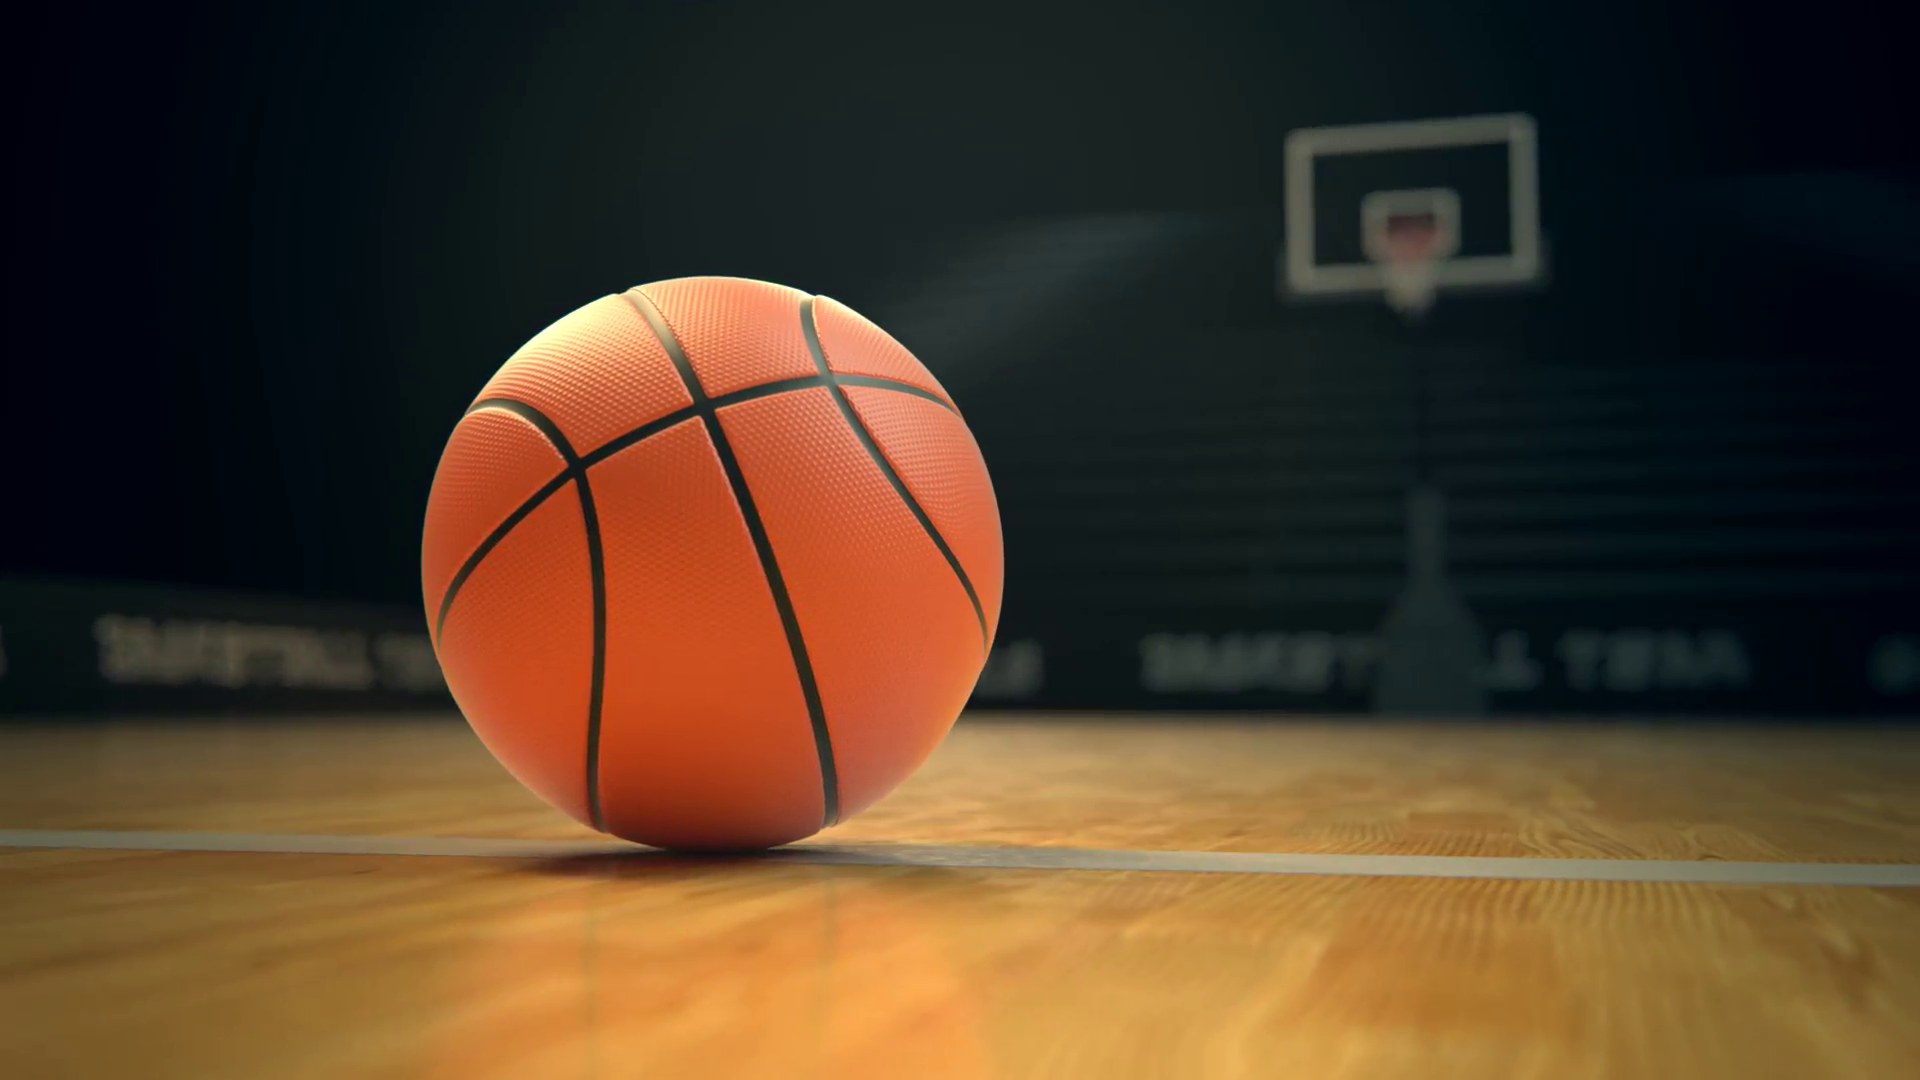 basketball-on-court_sweeoekml__F0000.png